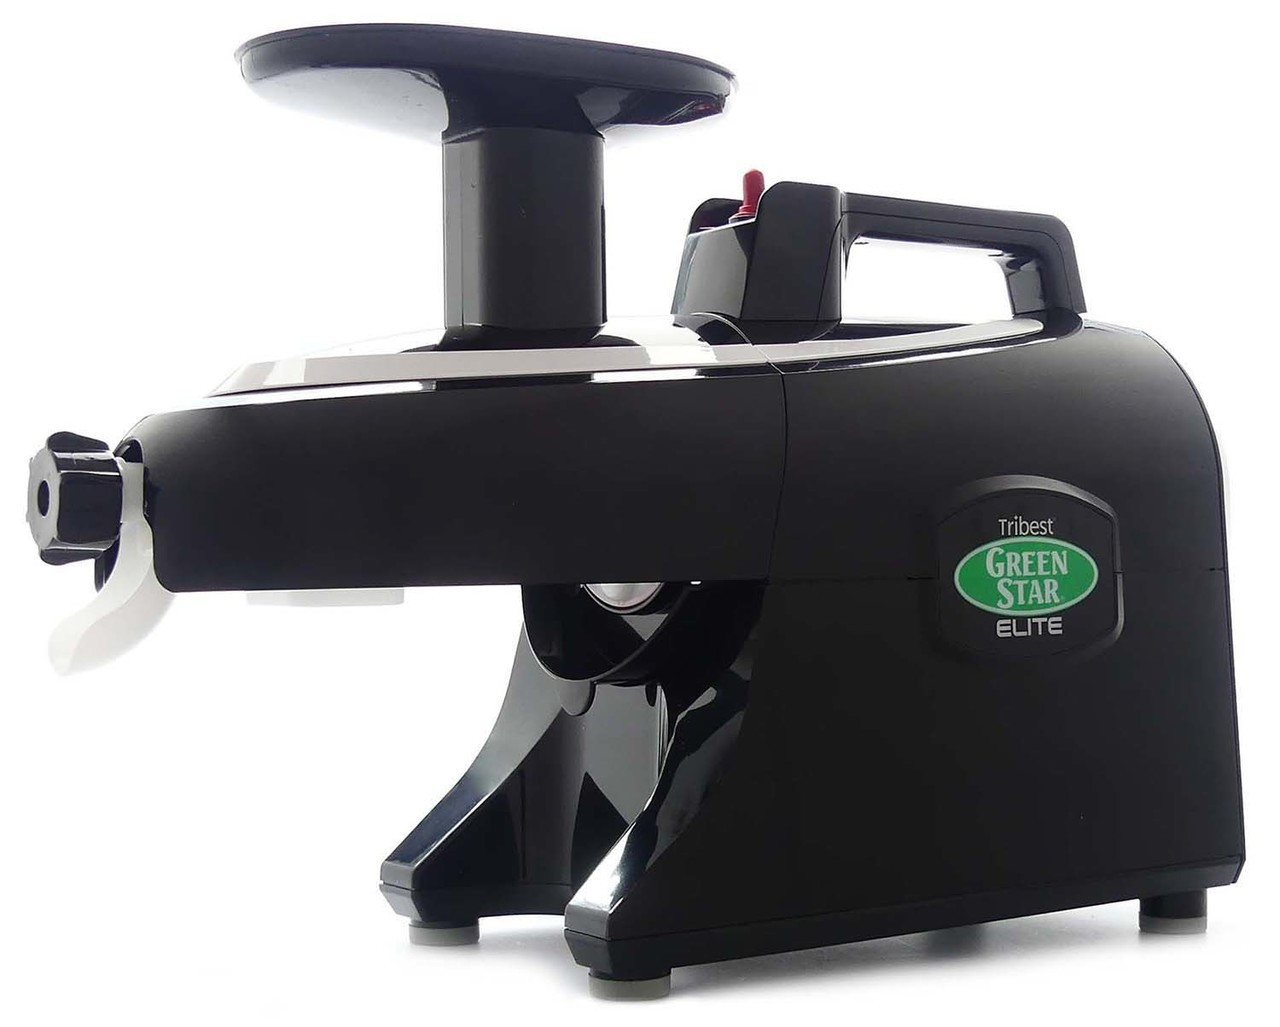 Green Star Elite GSE 5010 Twin Gear Juicer in Black